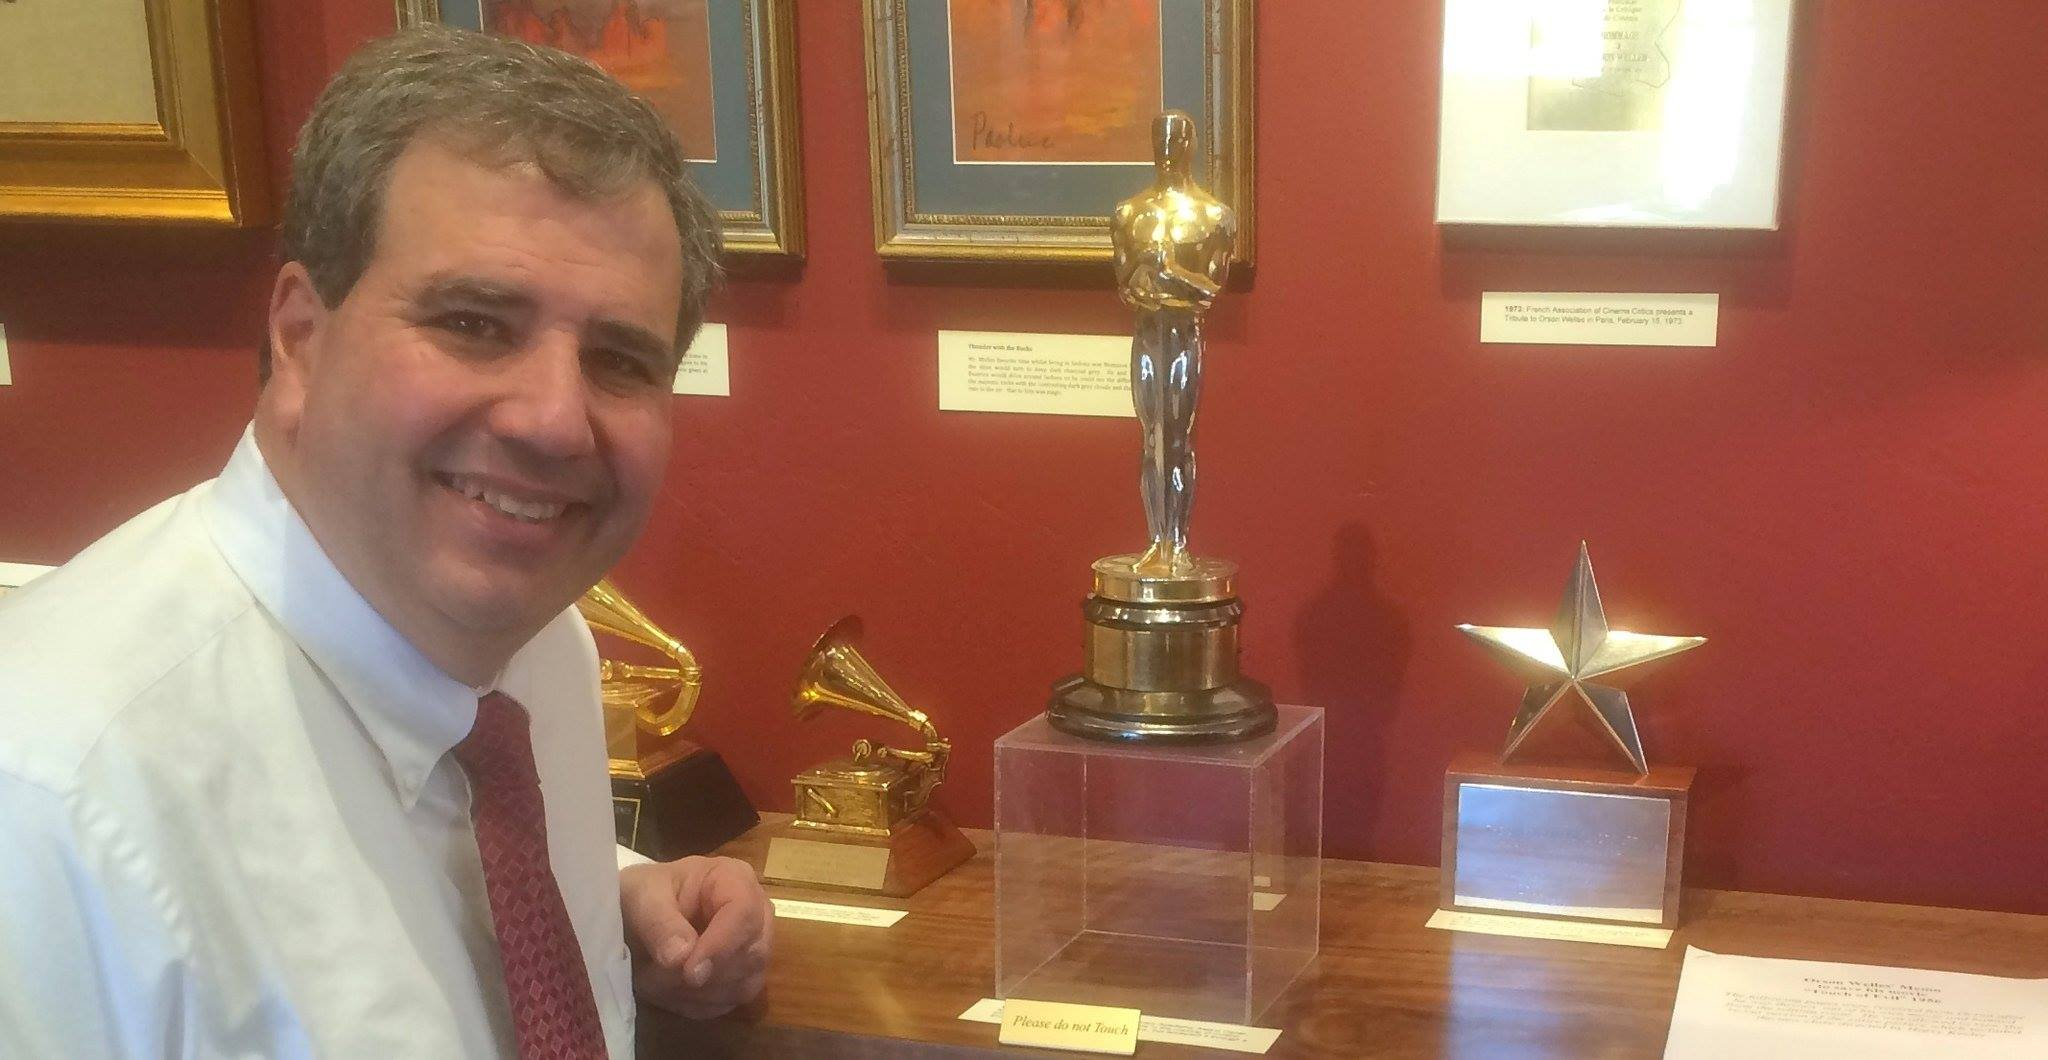 Ray Kelly with Orsons awards in Sedona